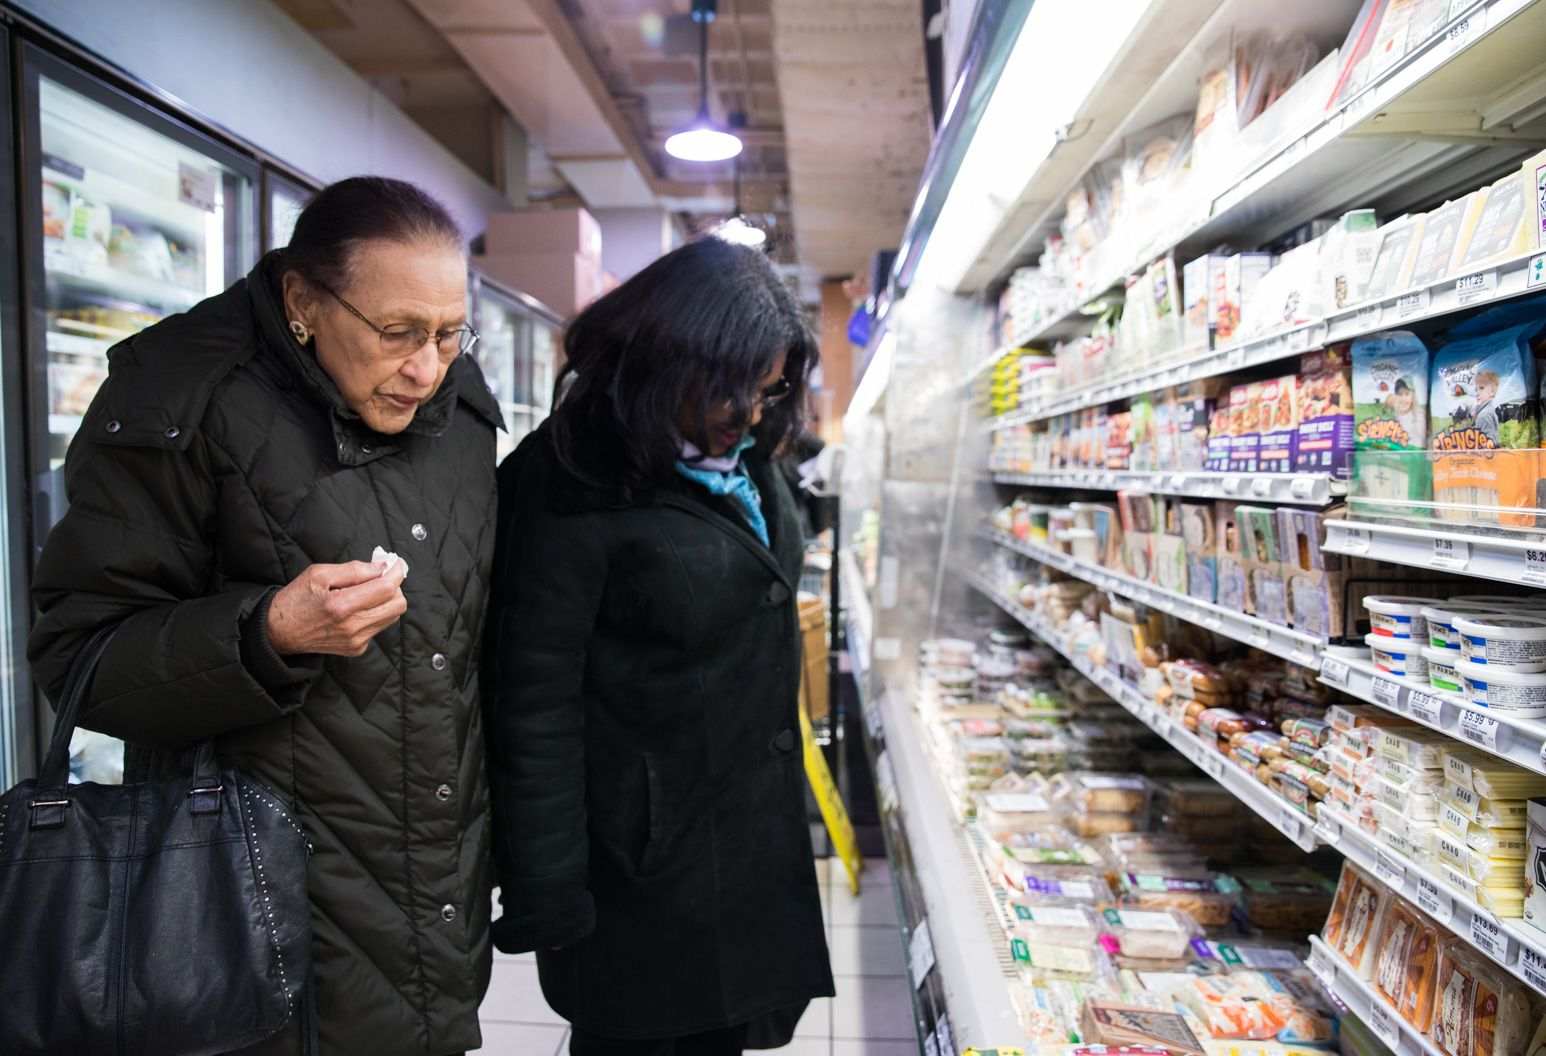 Woman and older woman both look at food selections in a supermarket aisle.